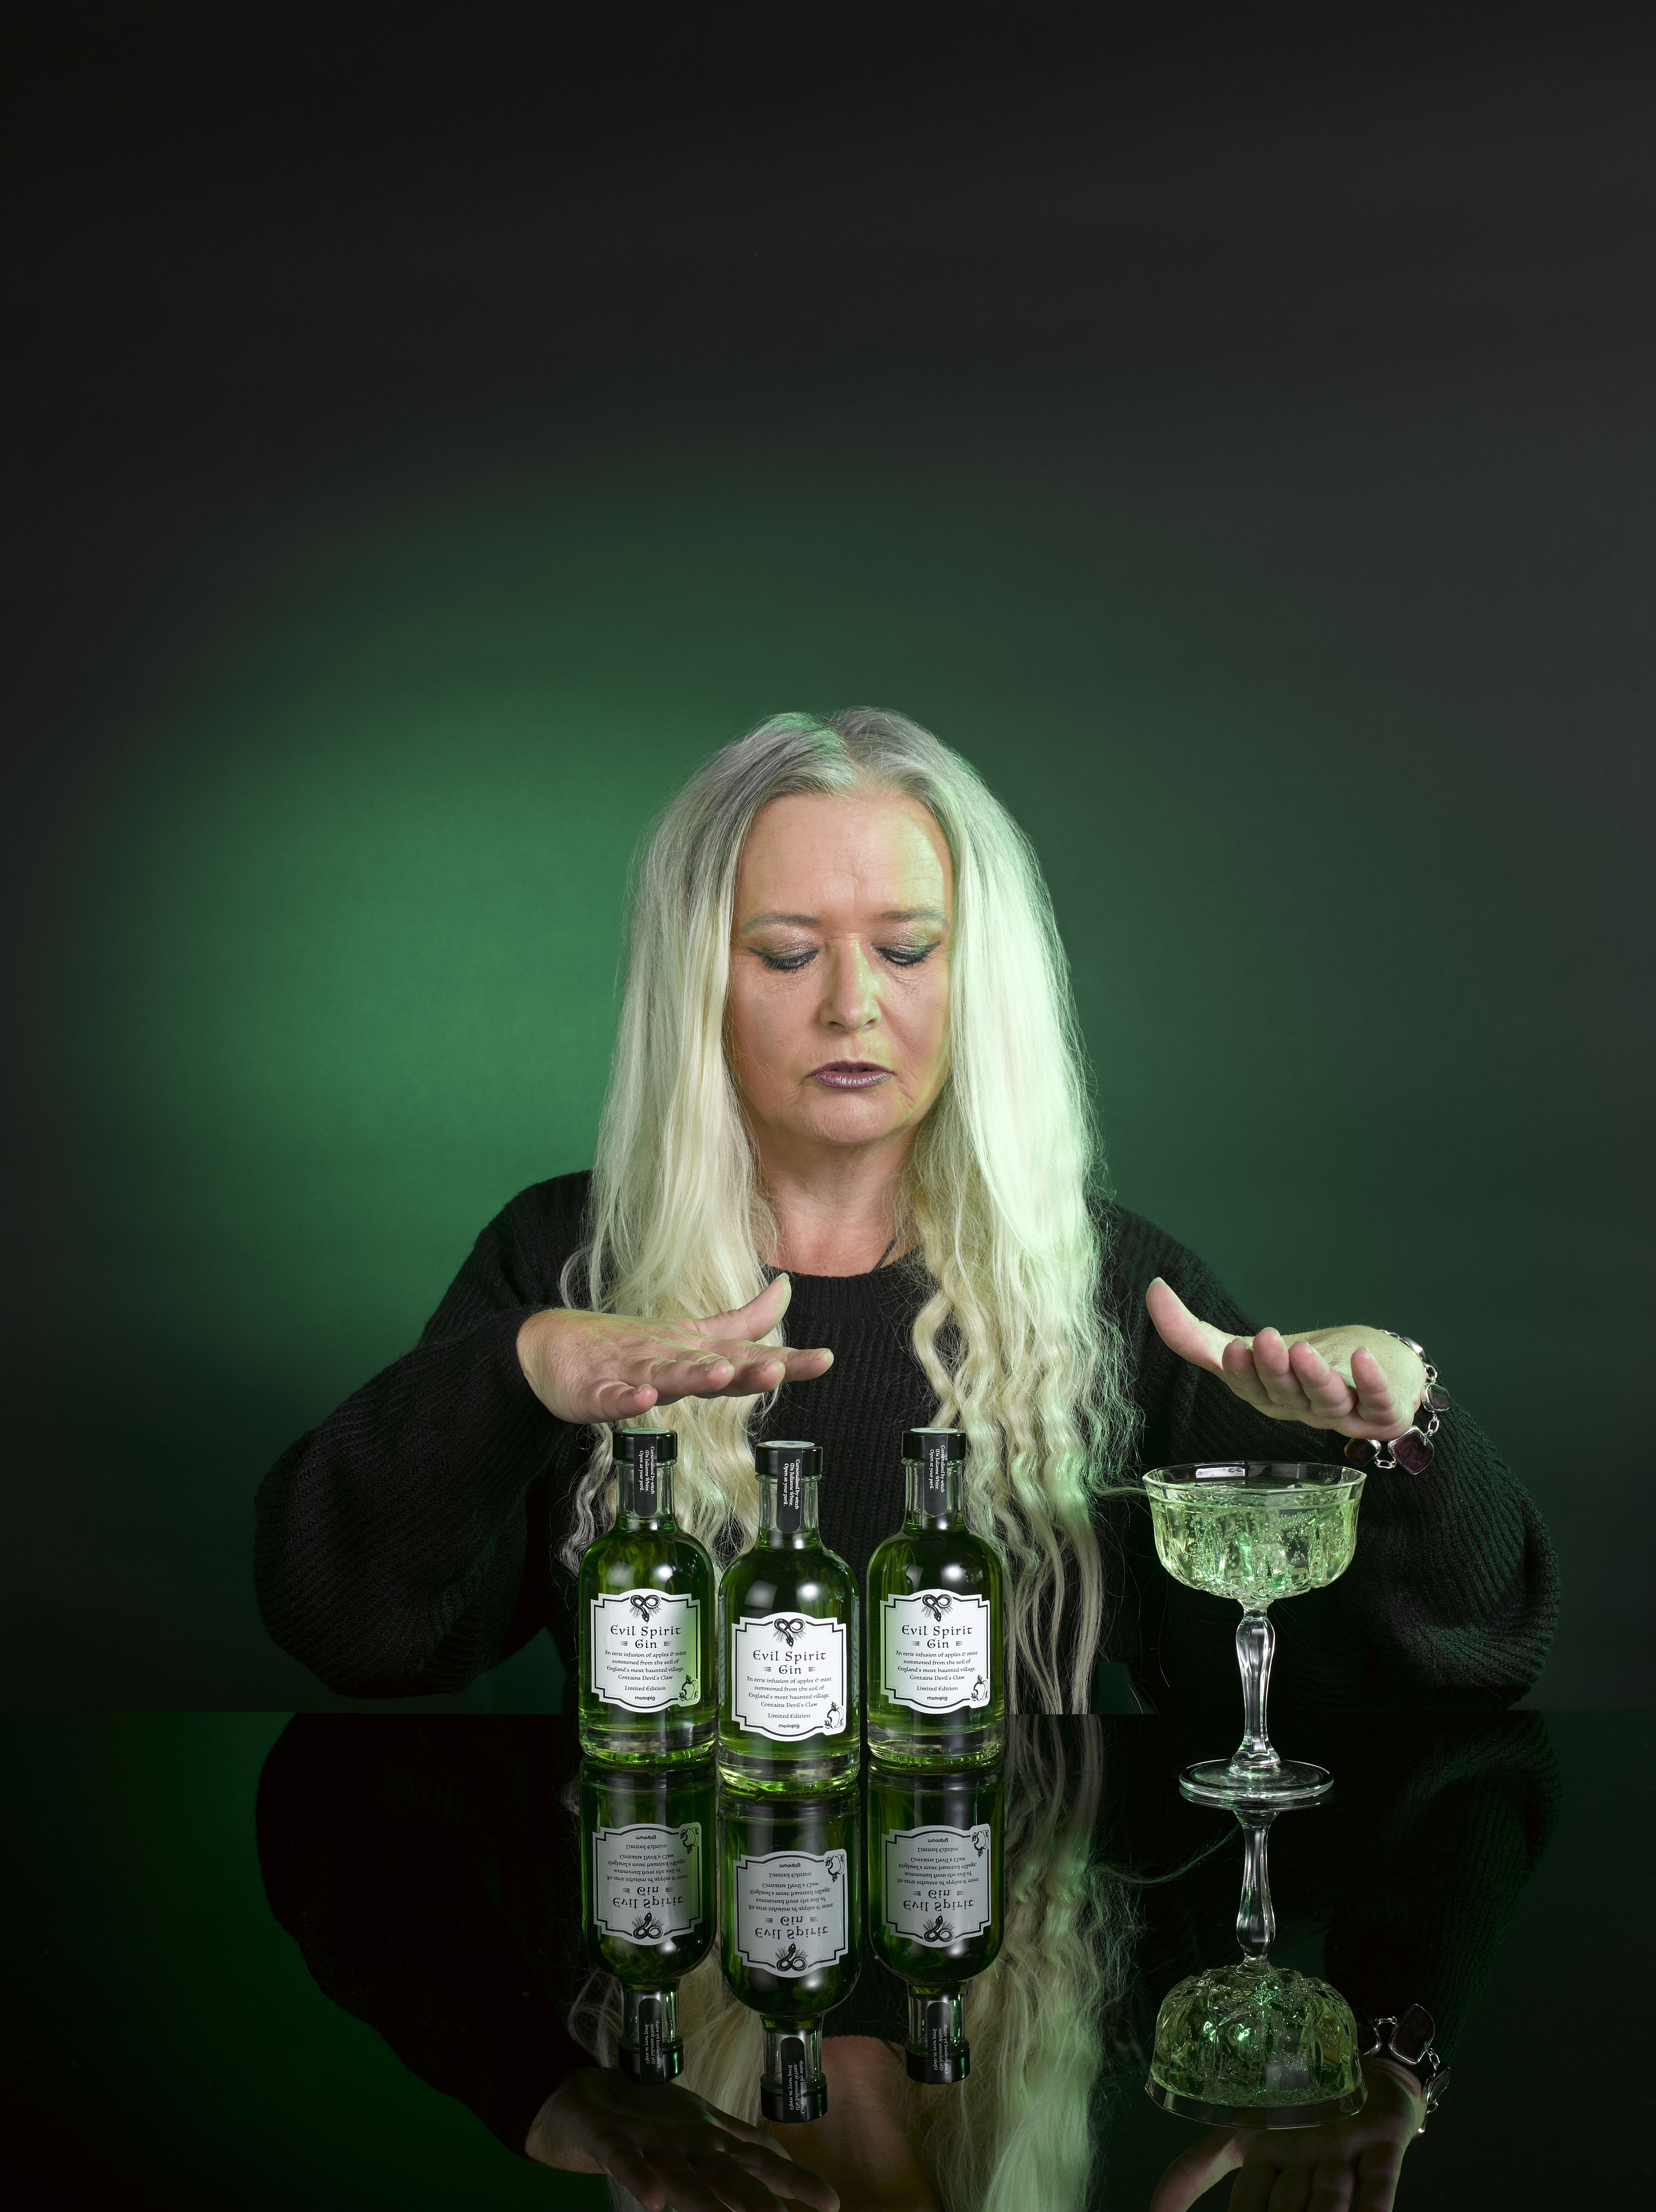 Alcohol Gifts - SOLD OUT Exclusive Evil Spirit Gin - Image 2